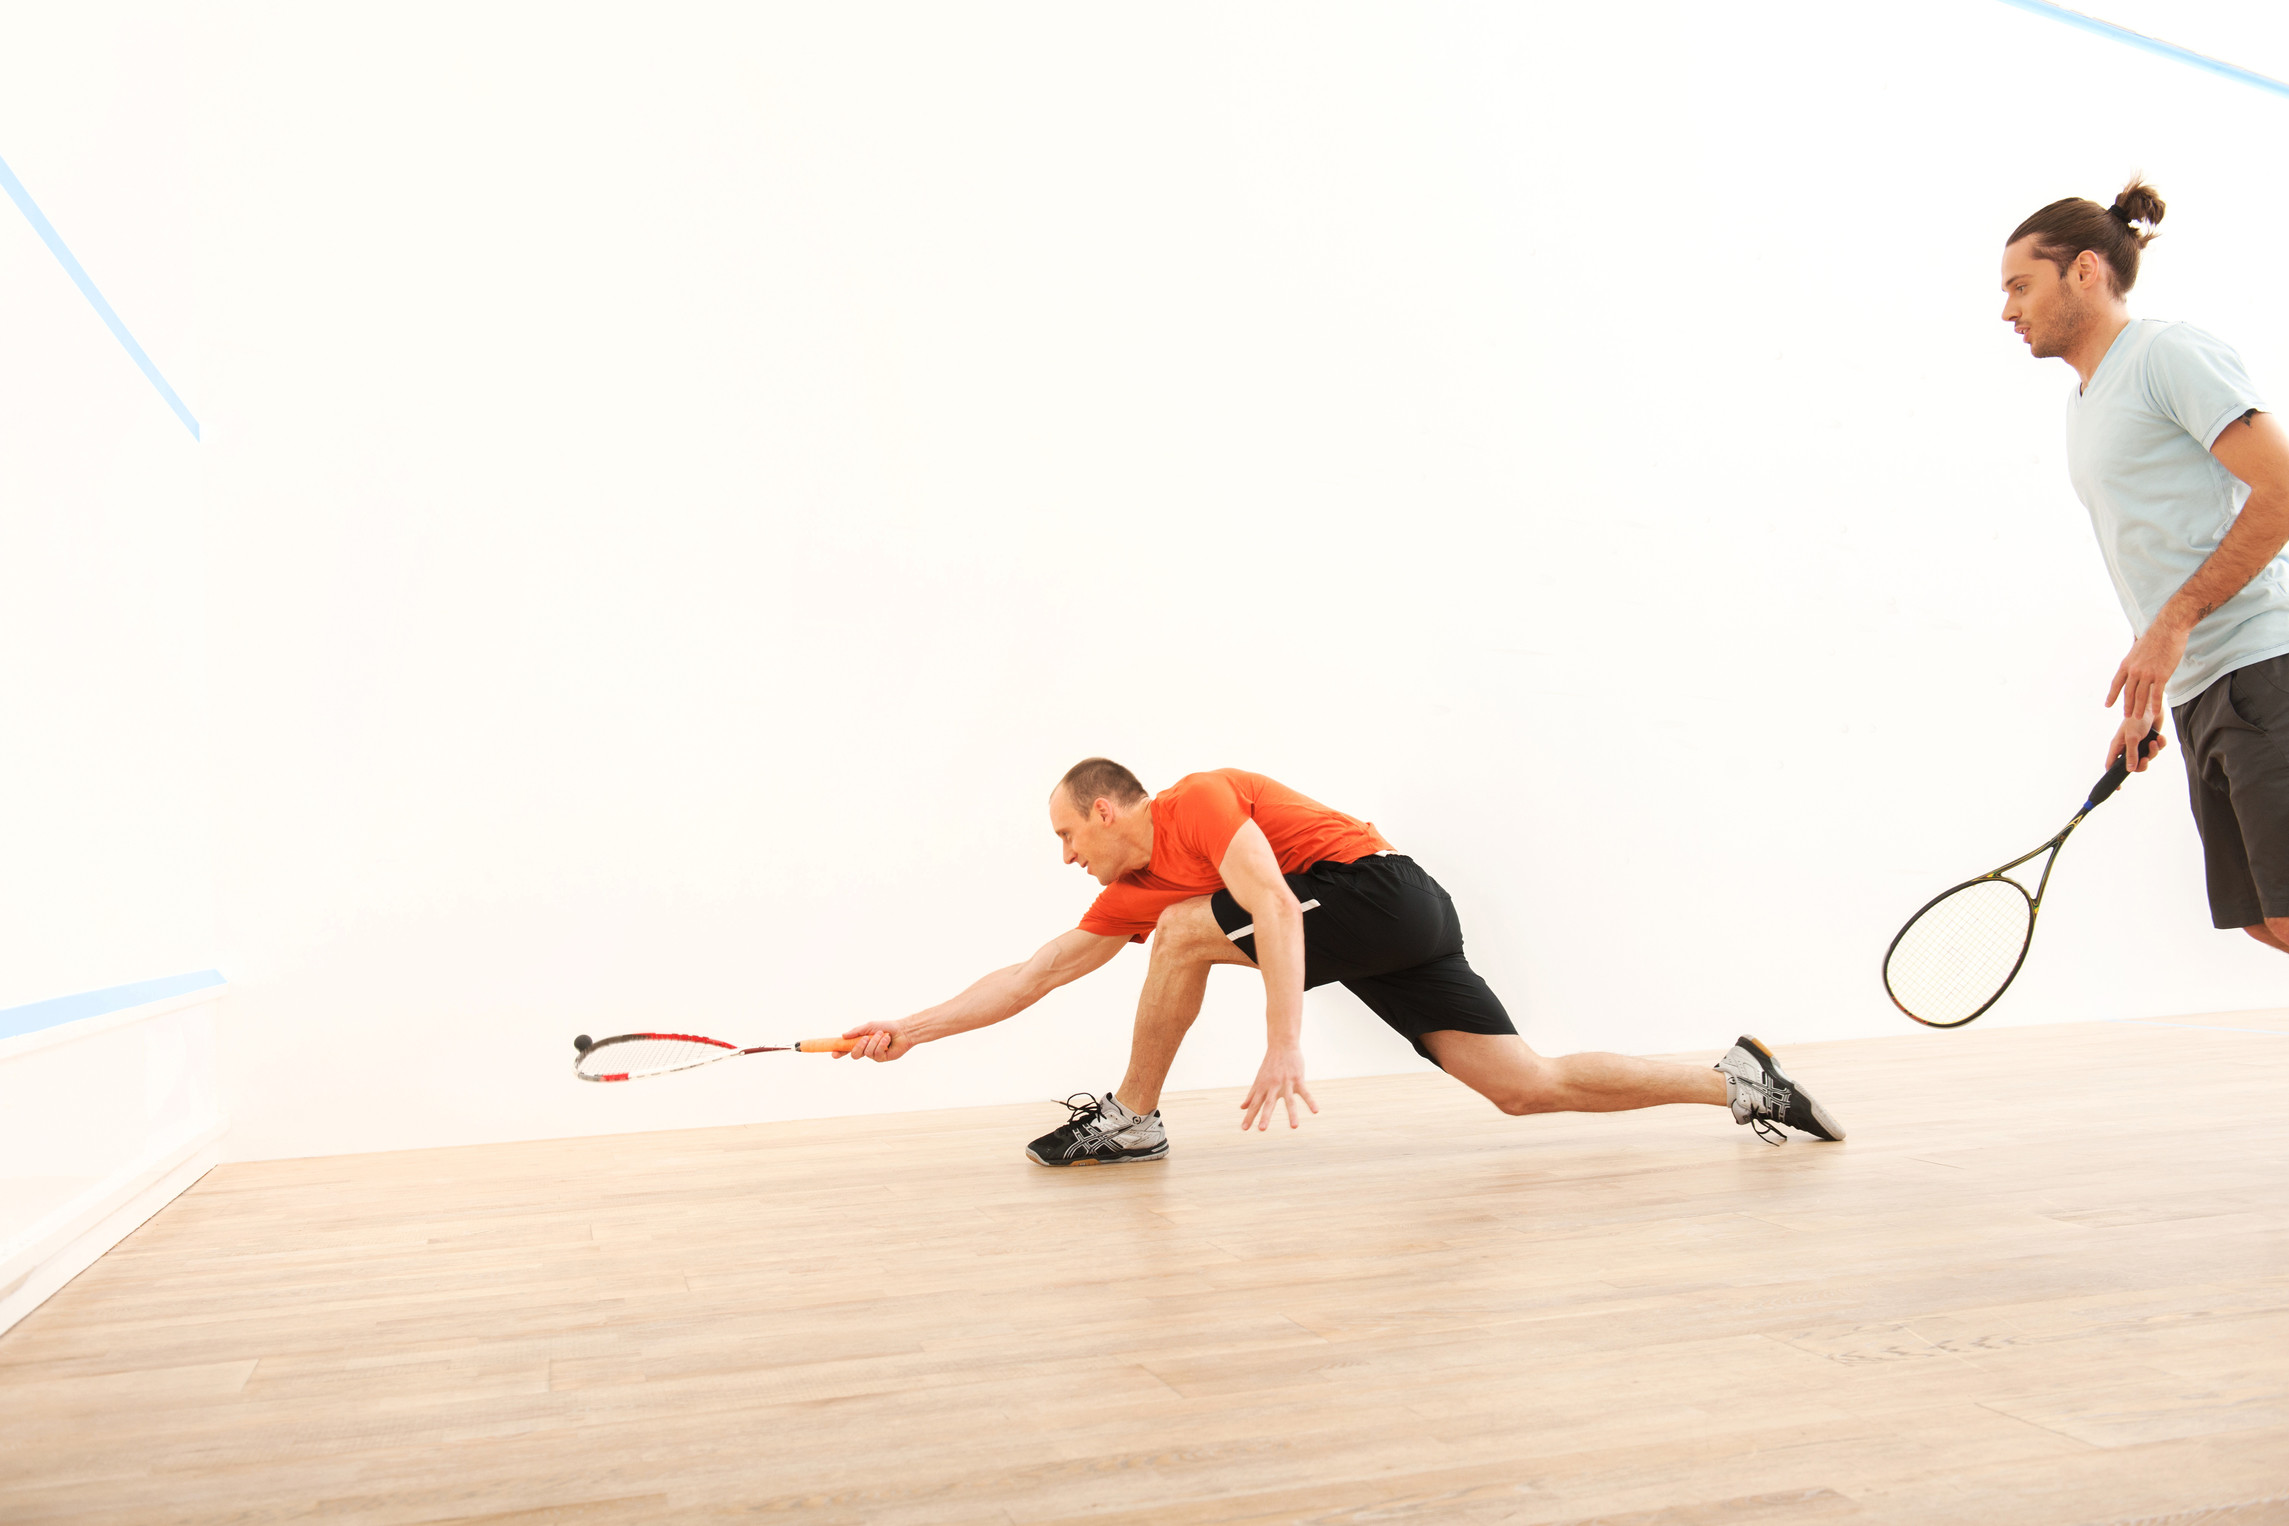 Squash Mechanics secures Lane Cove Squash Club